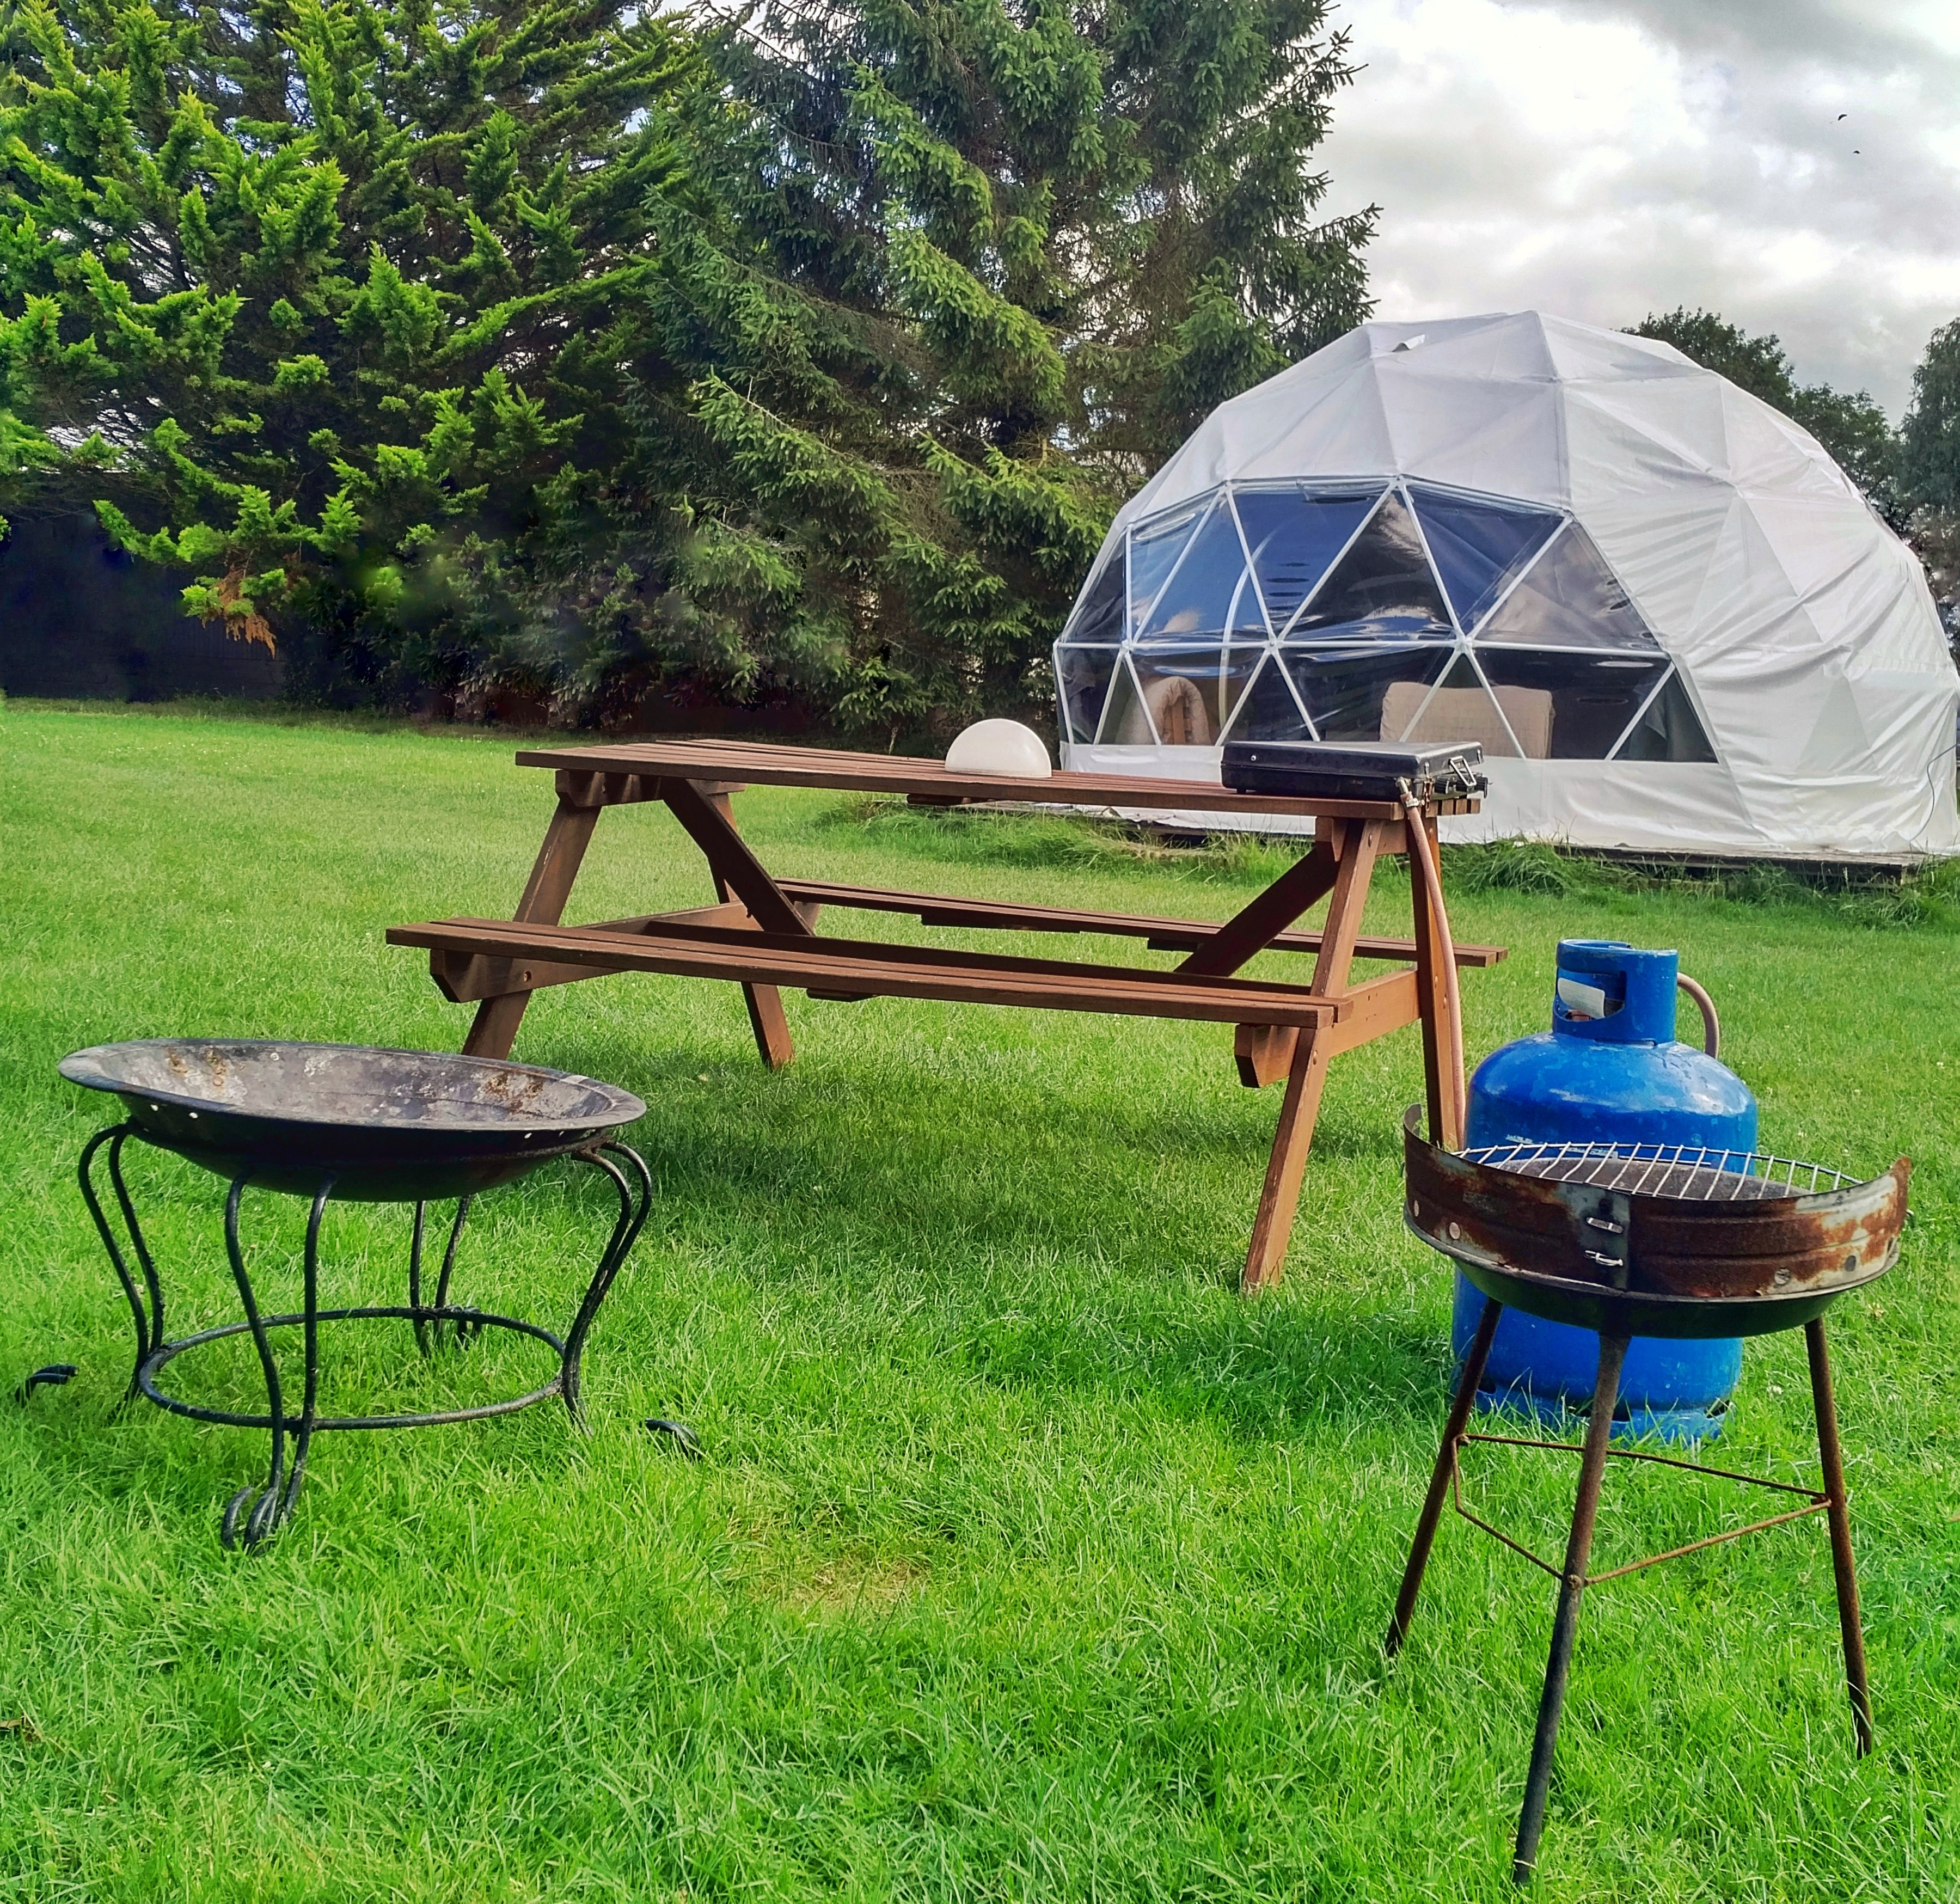 Glamping Dome in Dorset, UK at DCHE